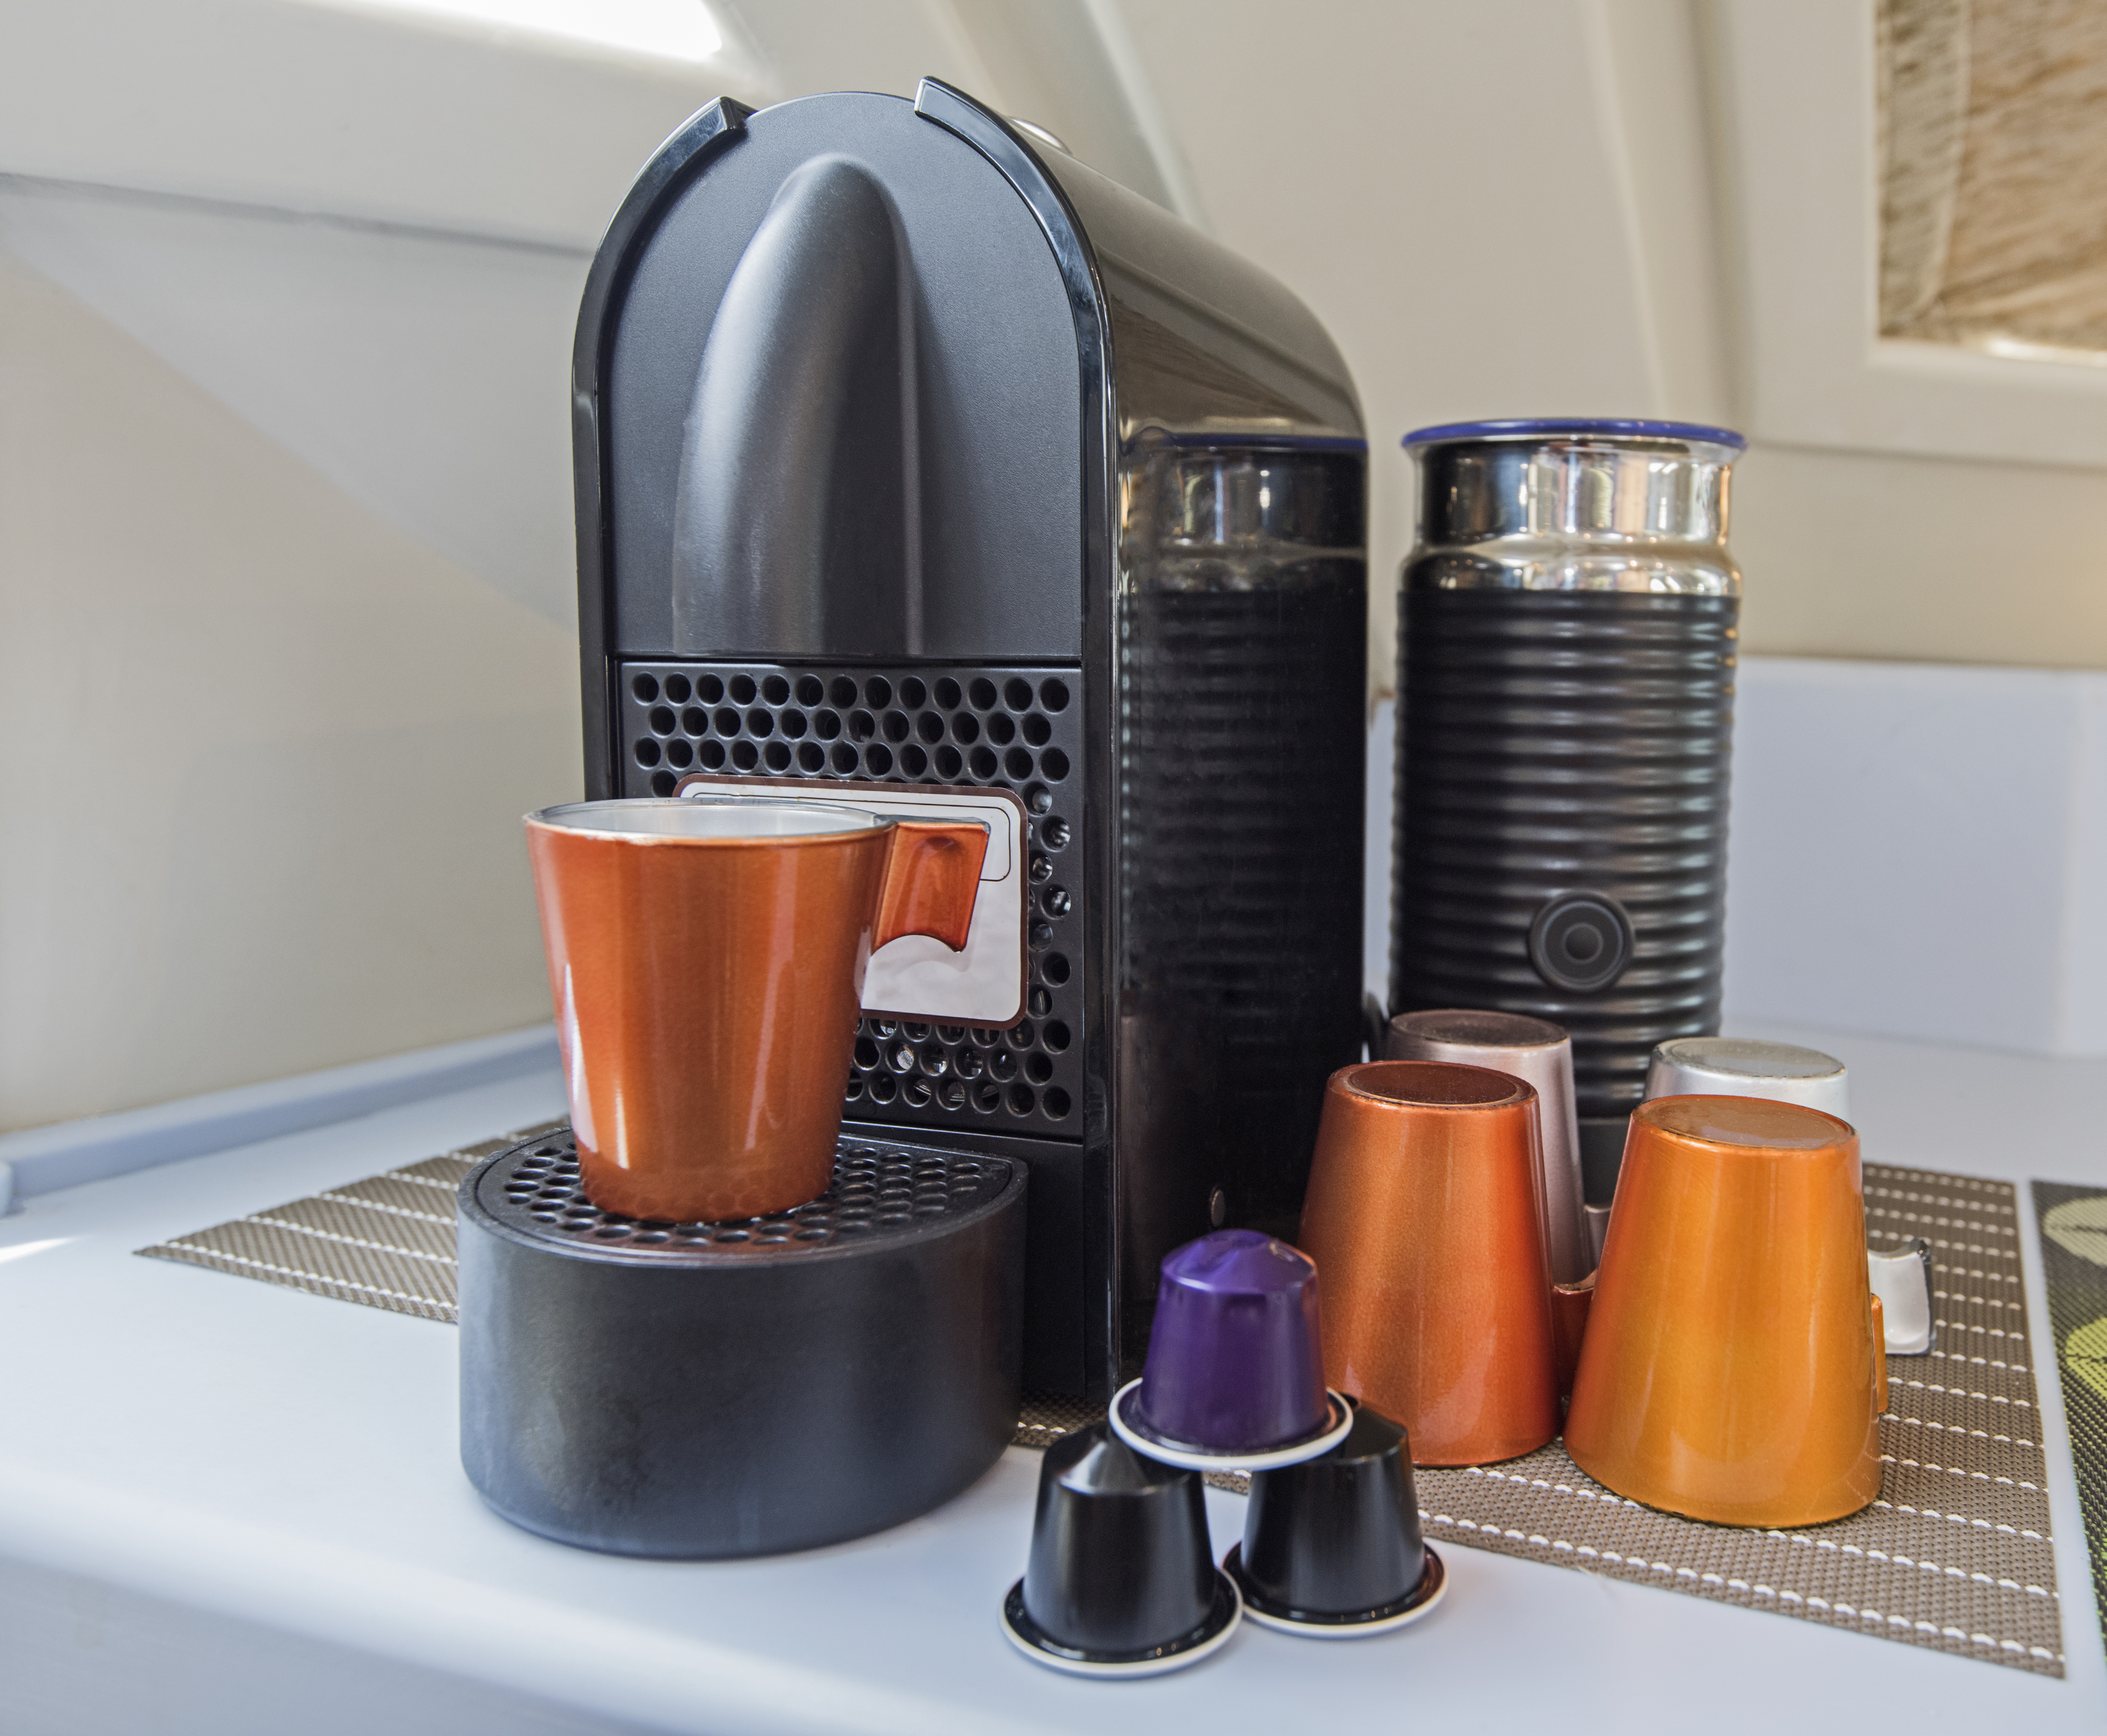 How To Prime A Keurig Leaftv